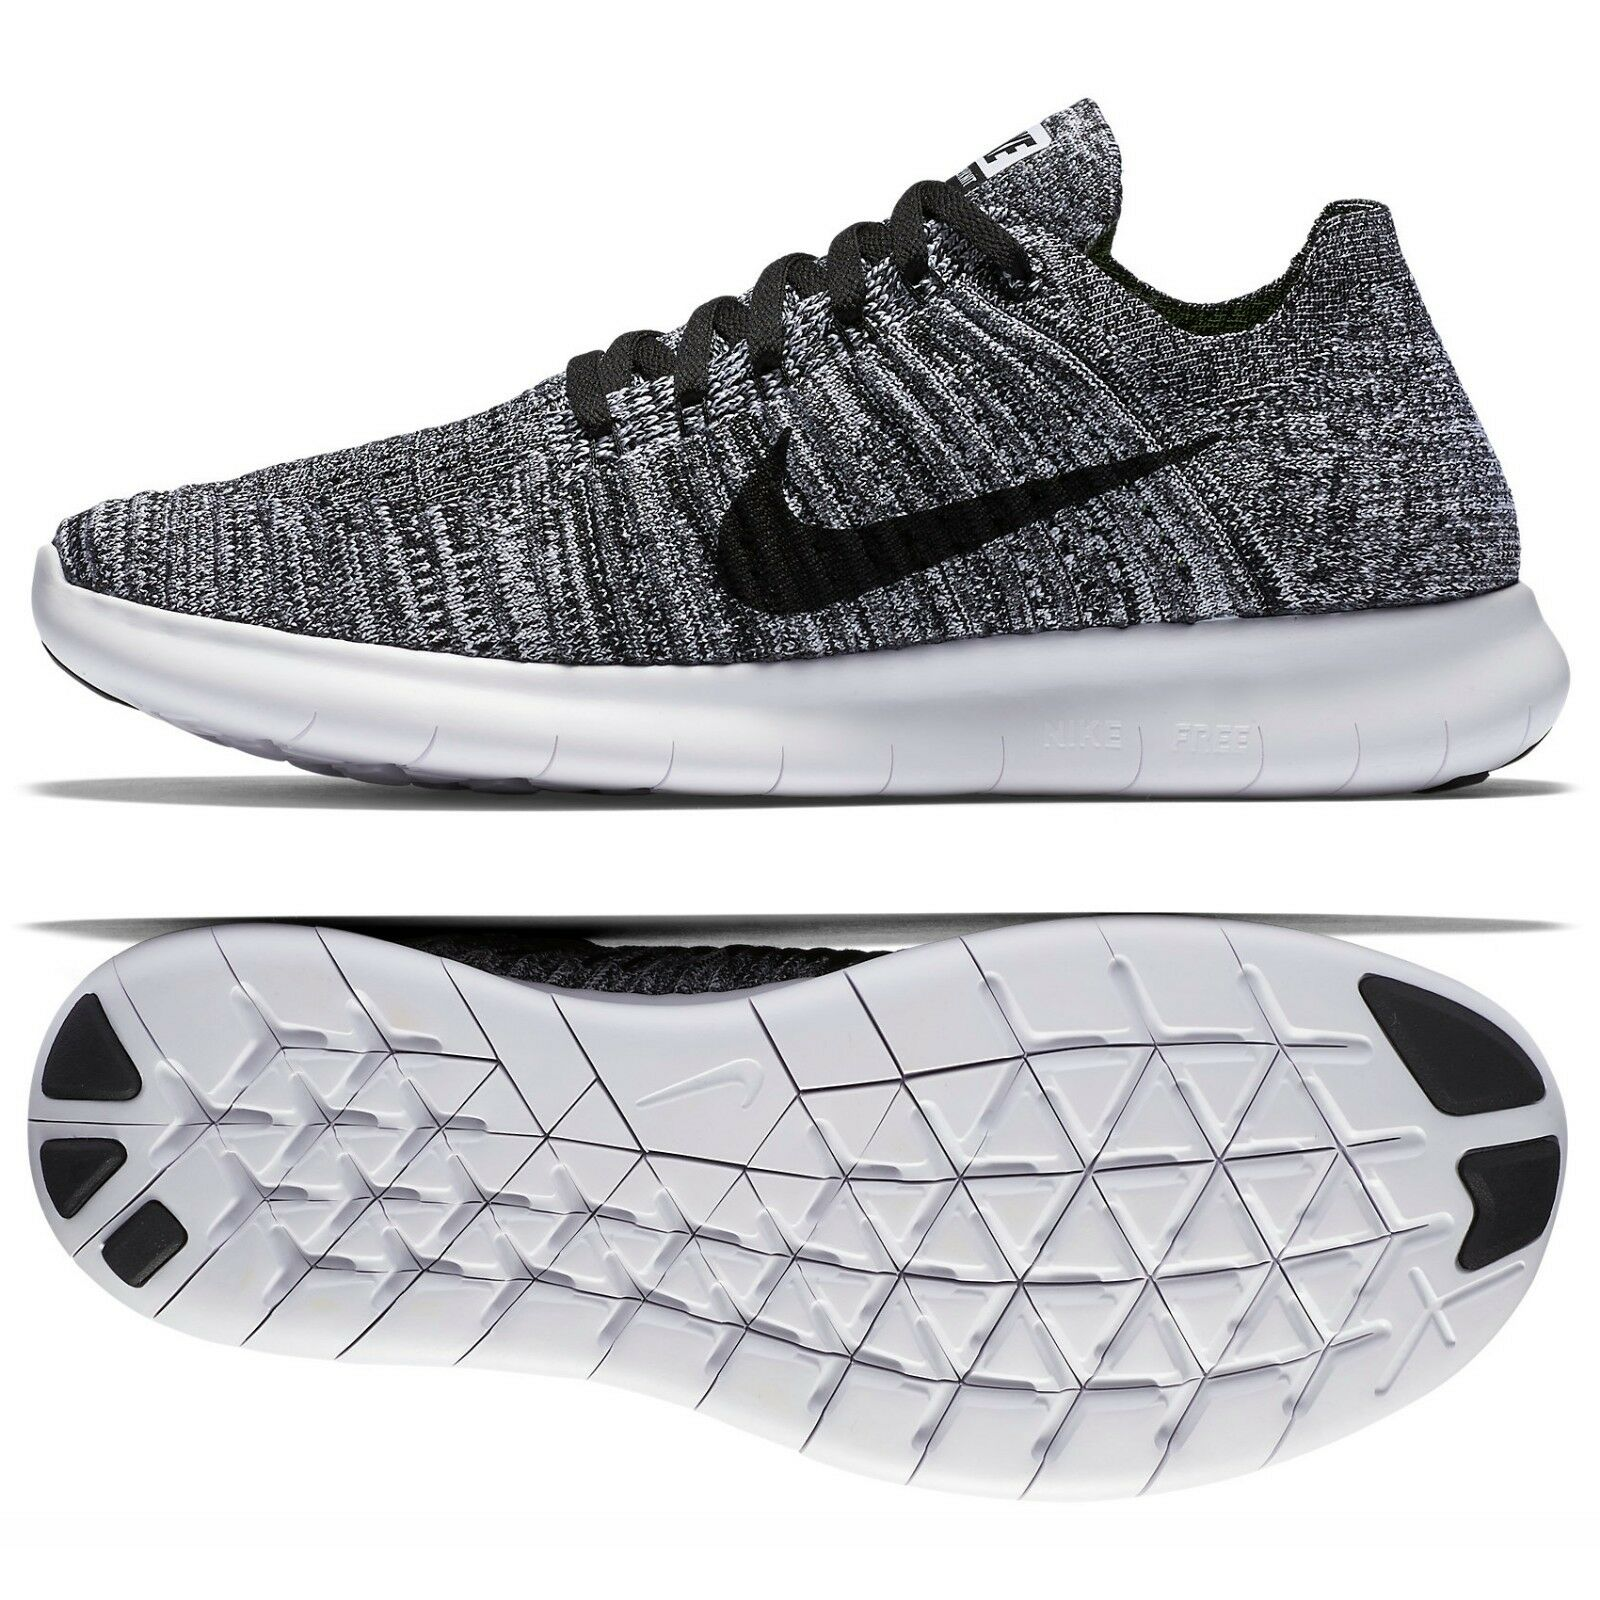 the latest 5dbd9 3a121 Nike WMNS Free RN Flyknit Oreo 831070-100 831070-100 831070-100 White Black  Women s Running Shoes ae6dc8